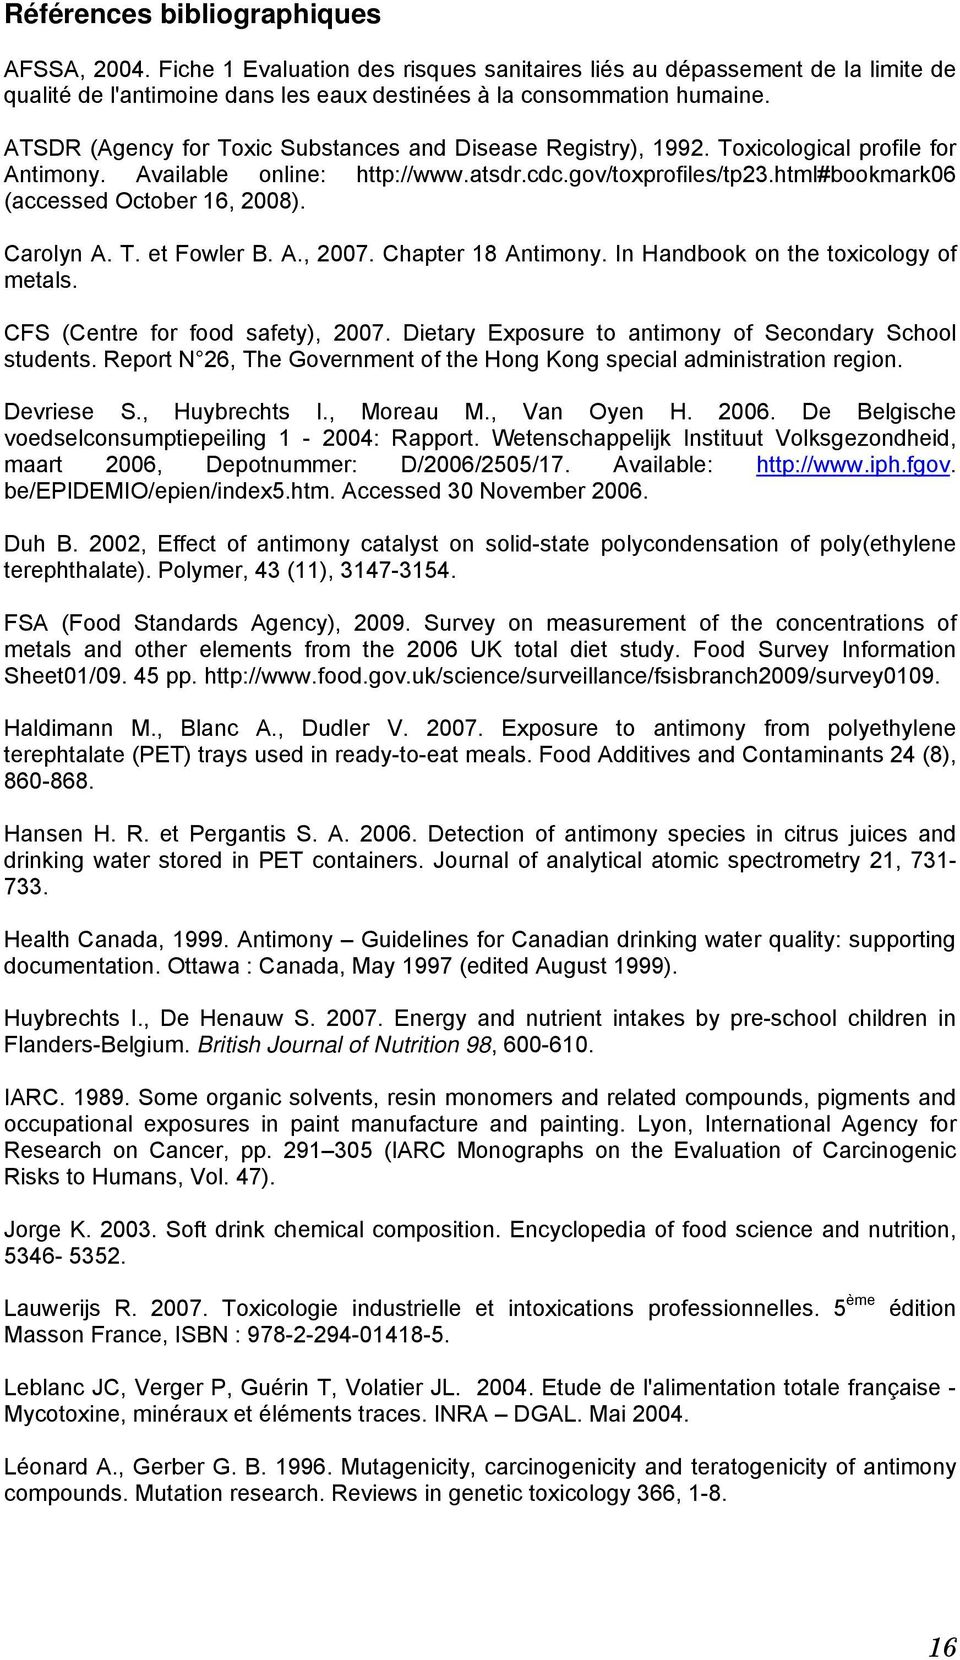 html#bookmark06 (accessed October 16, 2008). Carolyn A. T. et Fowler B. A., 2007. Chapter 18 Antimony. In Handbook on the toxicology of metals. CFS (Centre for food safety), 2007.